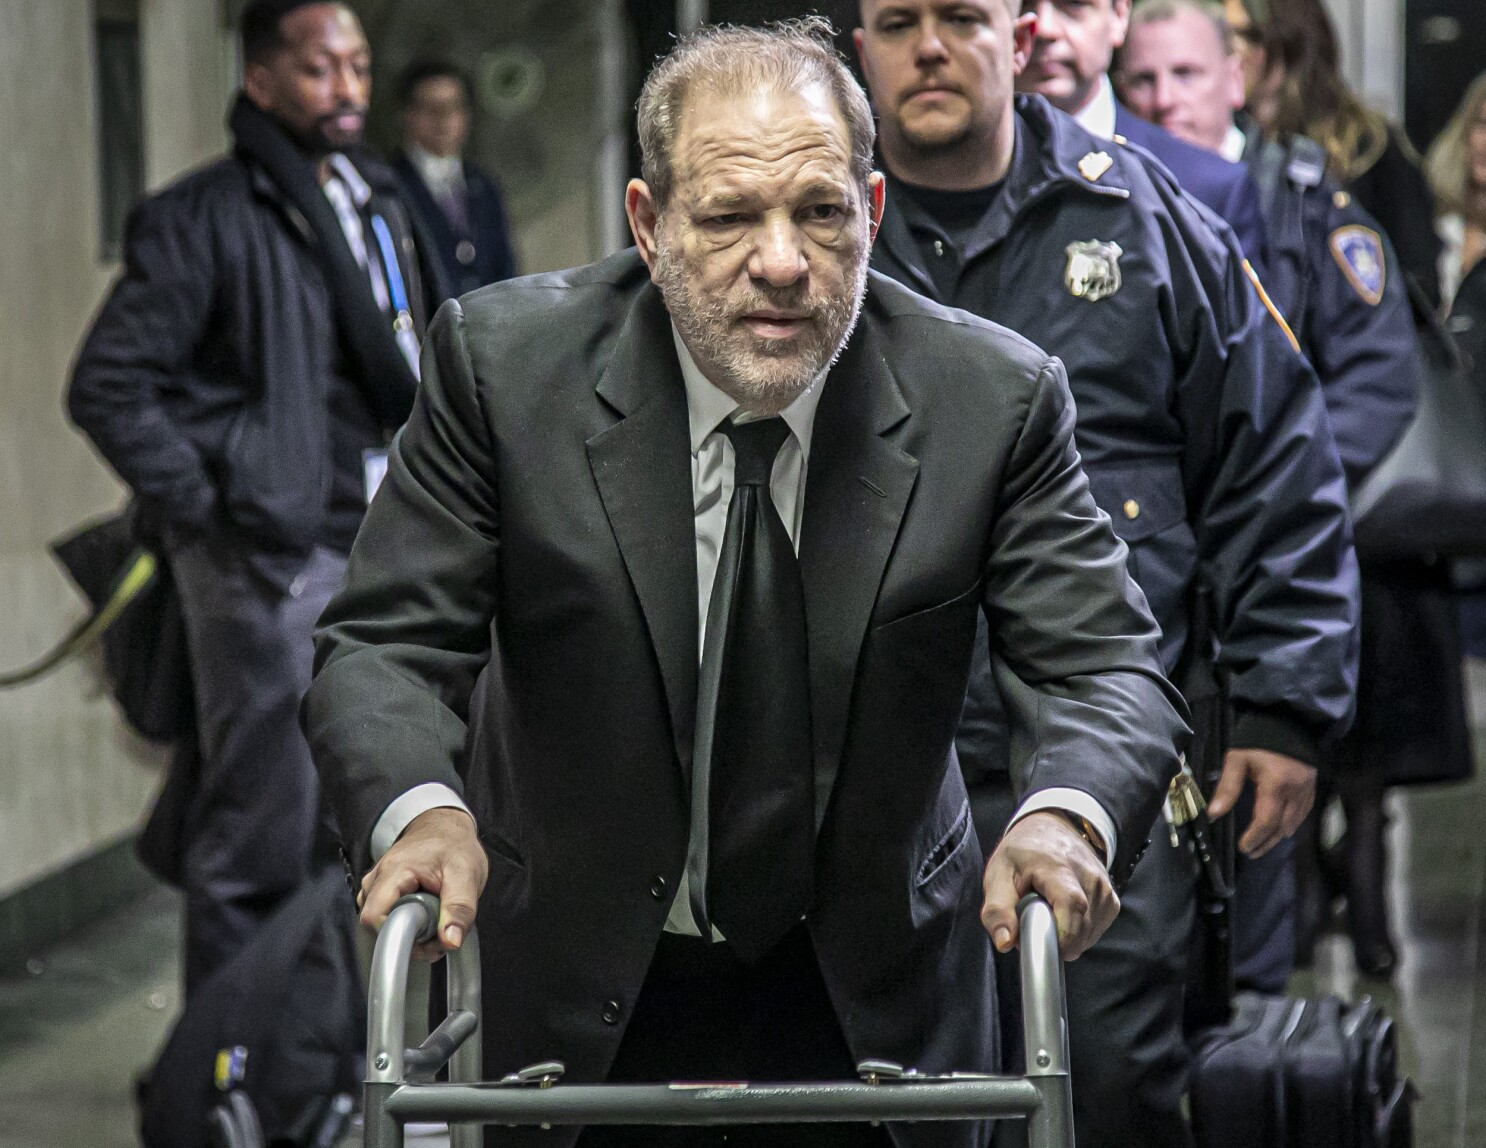 Harvey Weinstein Appeals New York Sexual Assault Conviction Los Angeles Times